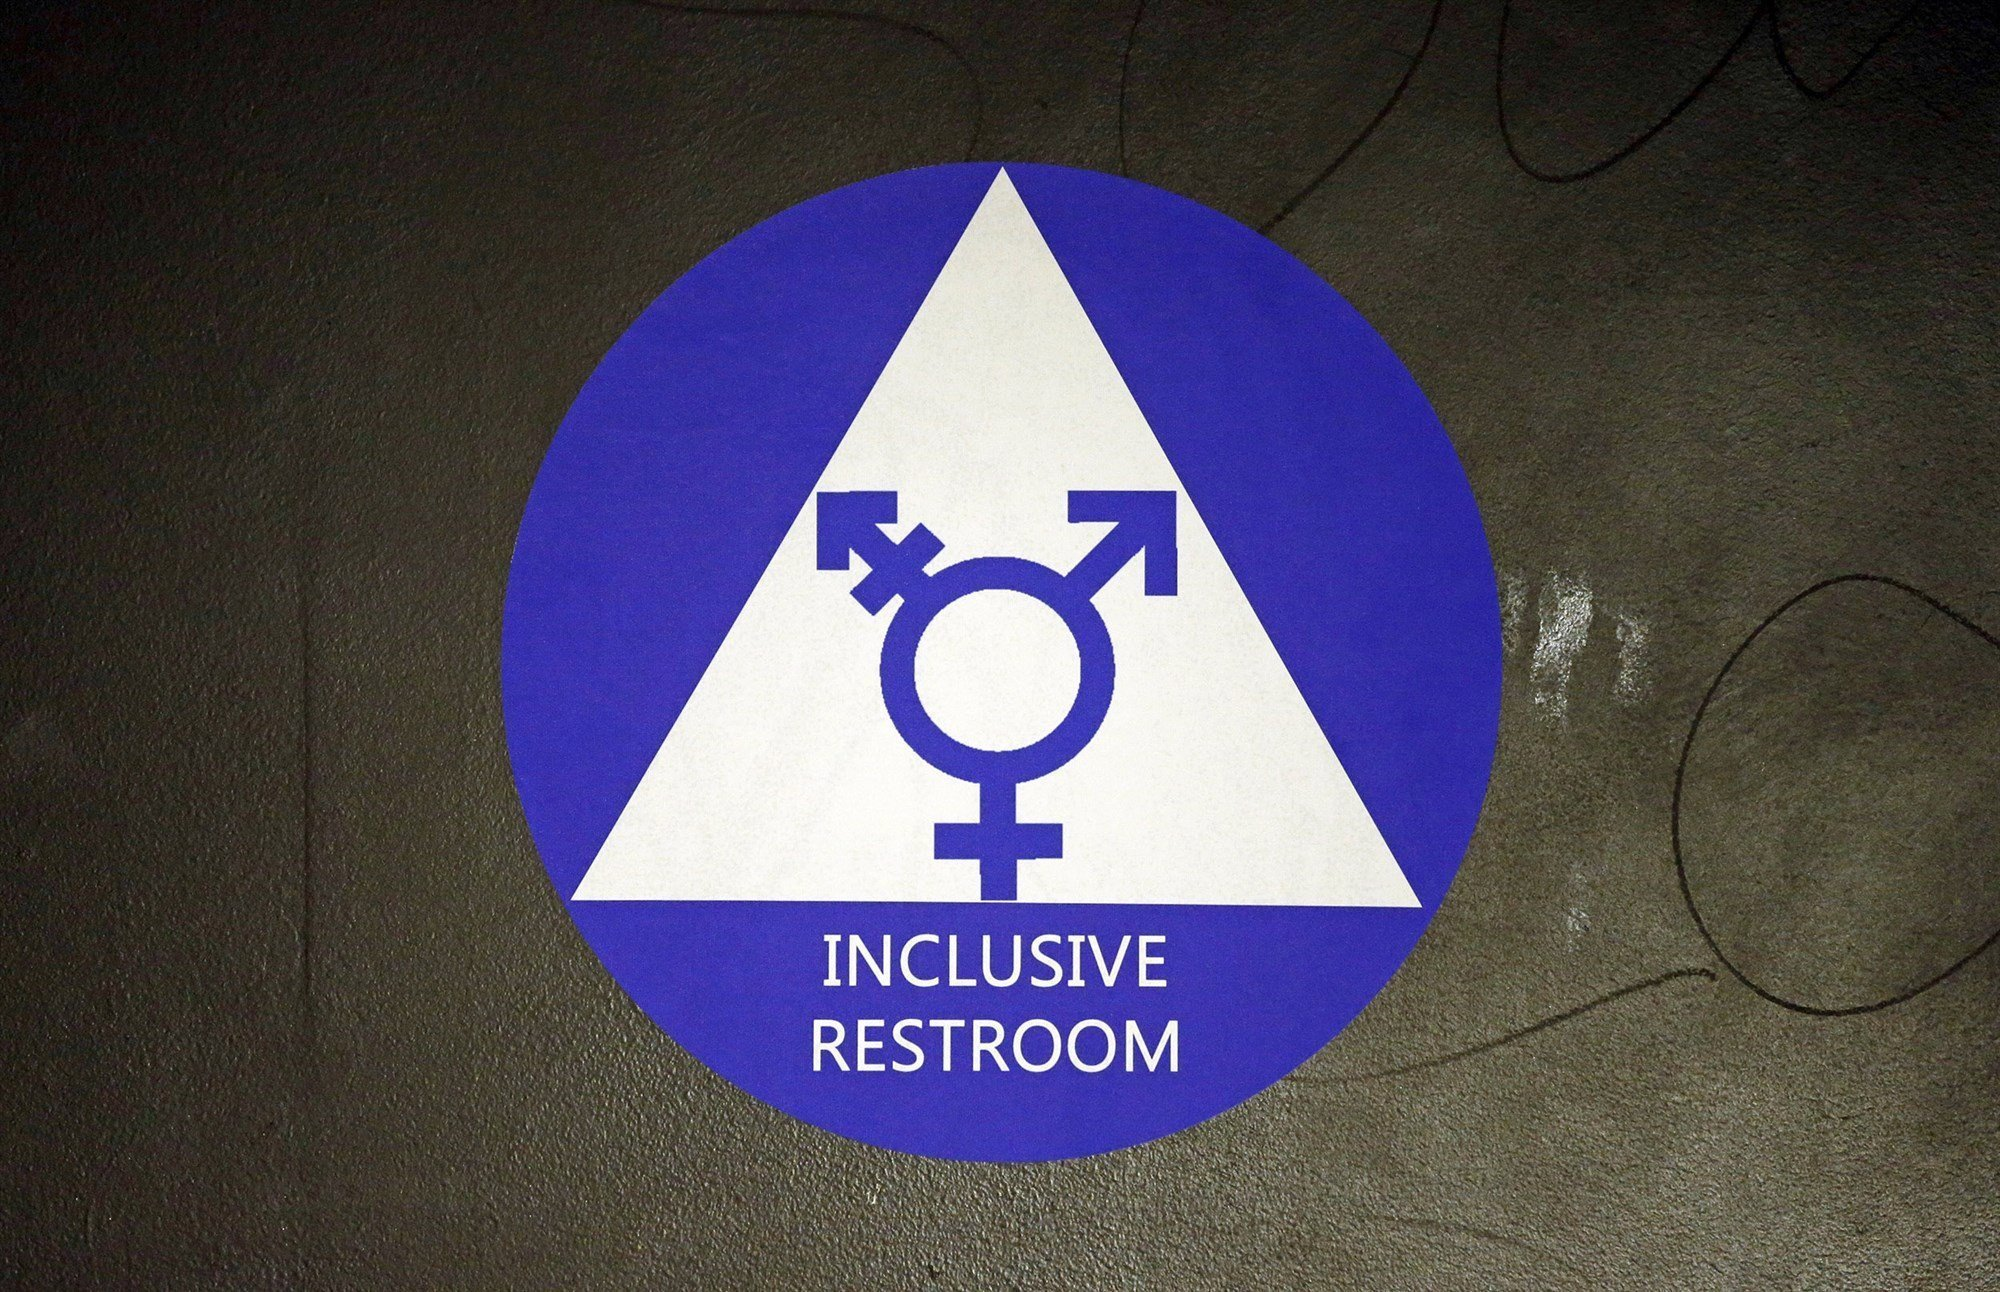 No More 'Manholes': Berkeley, California, Removing all Gendered Language From City Code